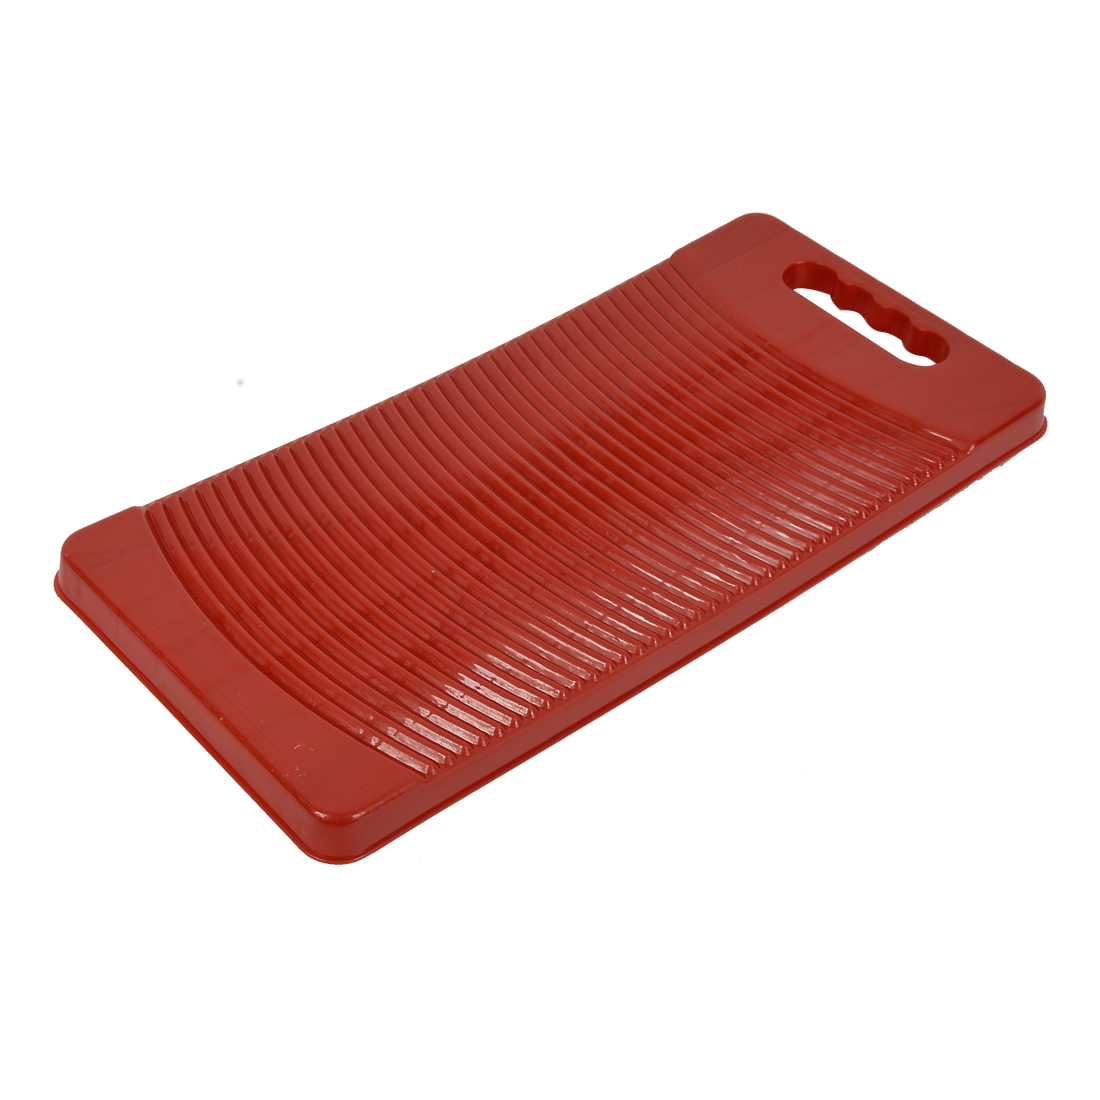 "Household 19.3"" Length Light and Portable Washboard Washing Clothes Board Red"